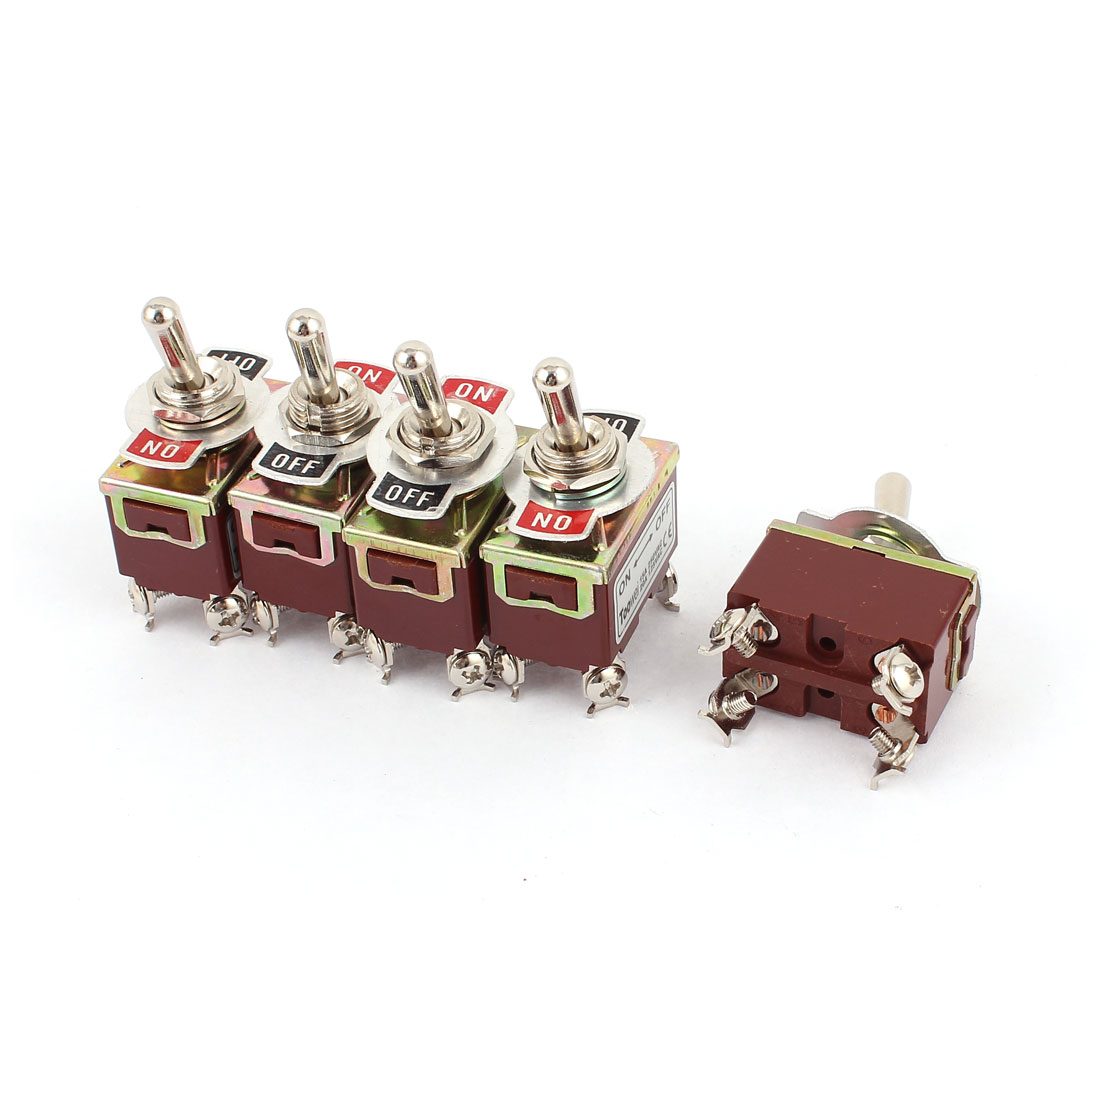 5Pcs AC 250V 15A / 125V 20A Latching DPST 2 Positions Toggle Switch